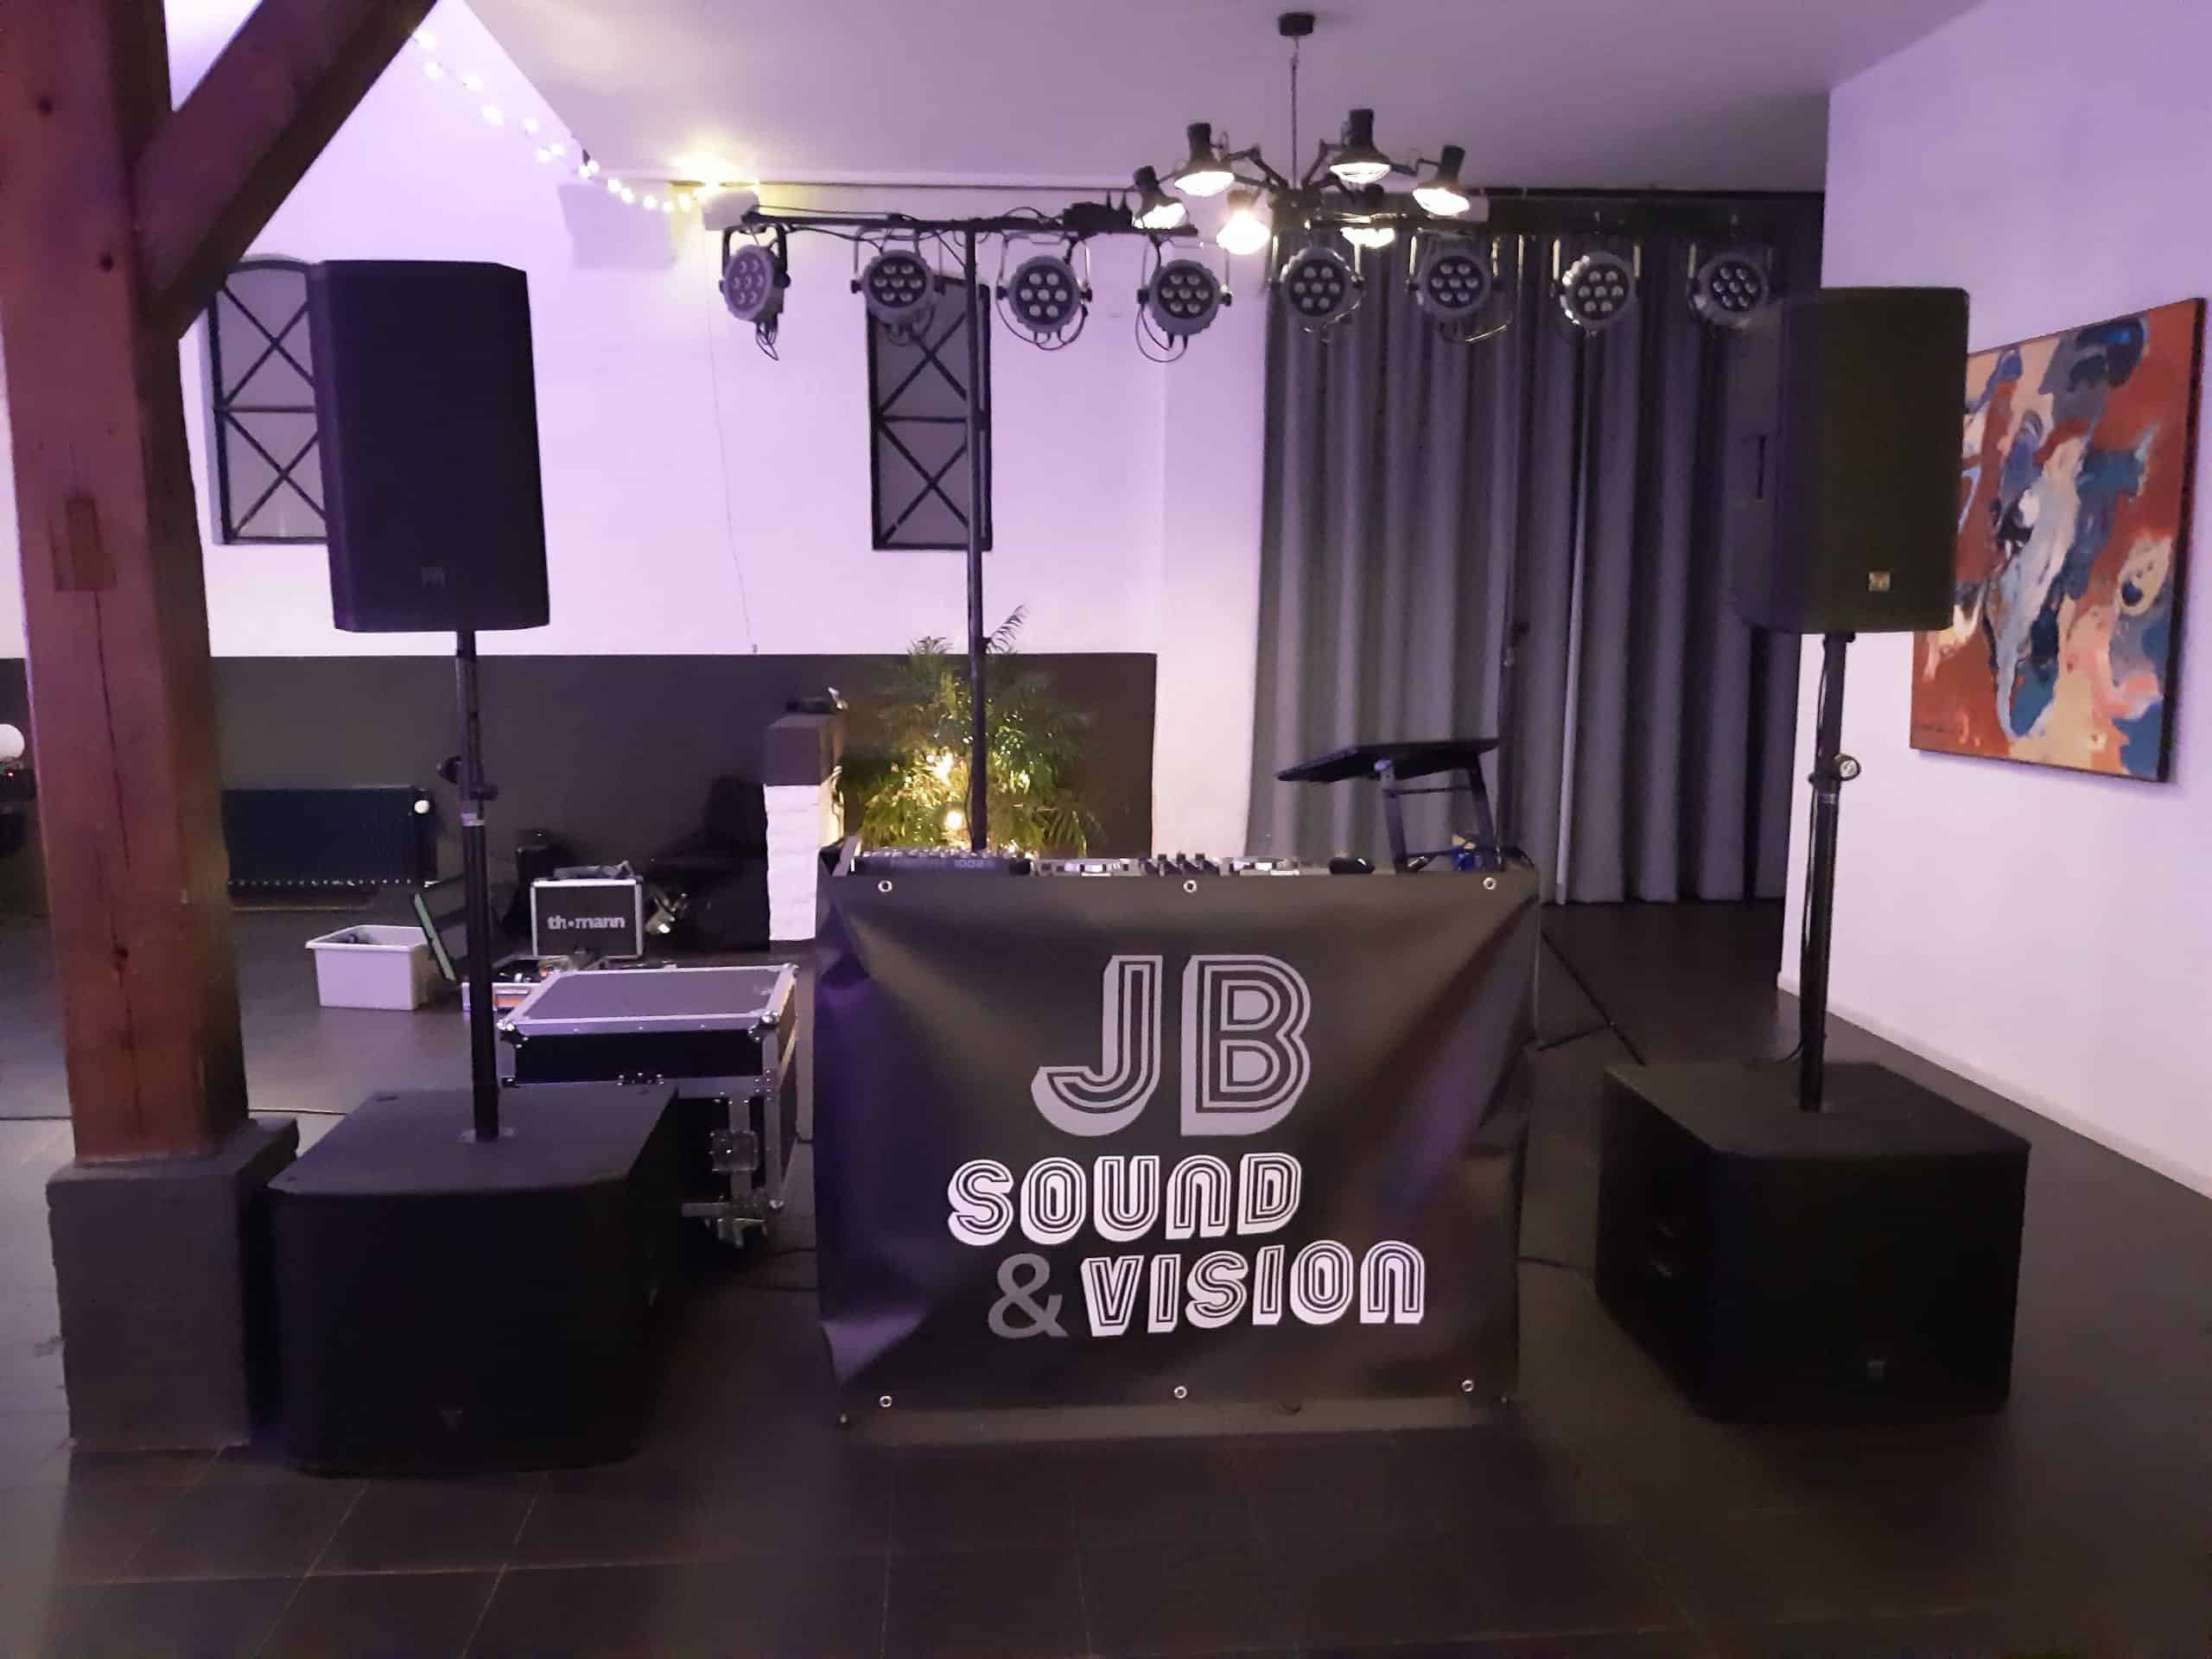 Drive-in Show Hardenberg